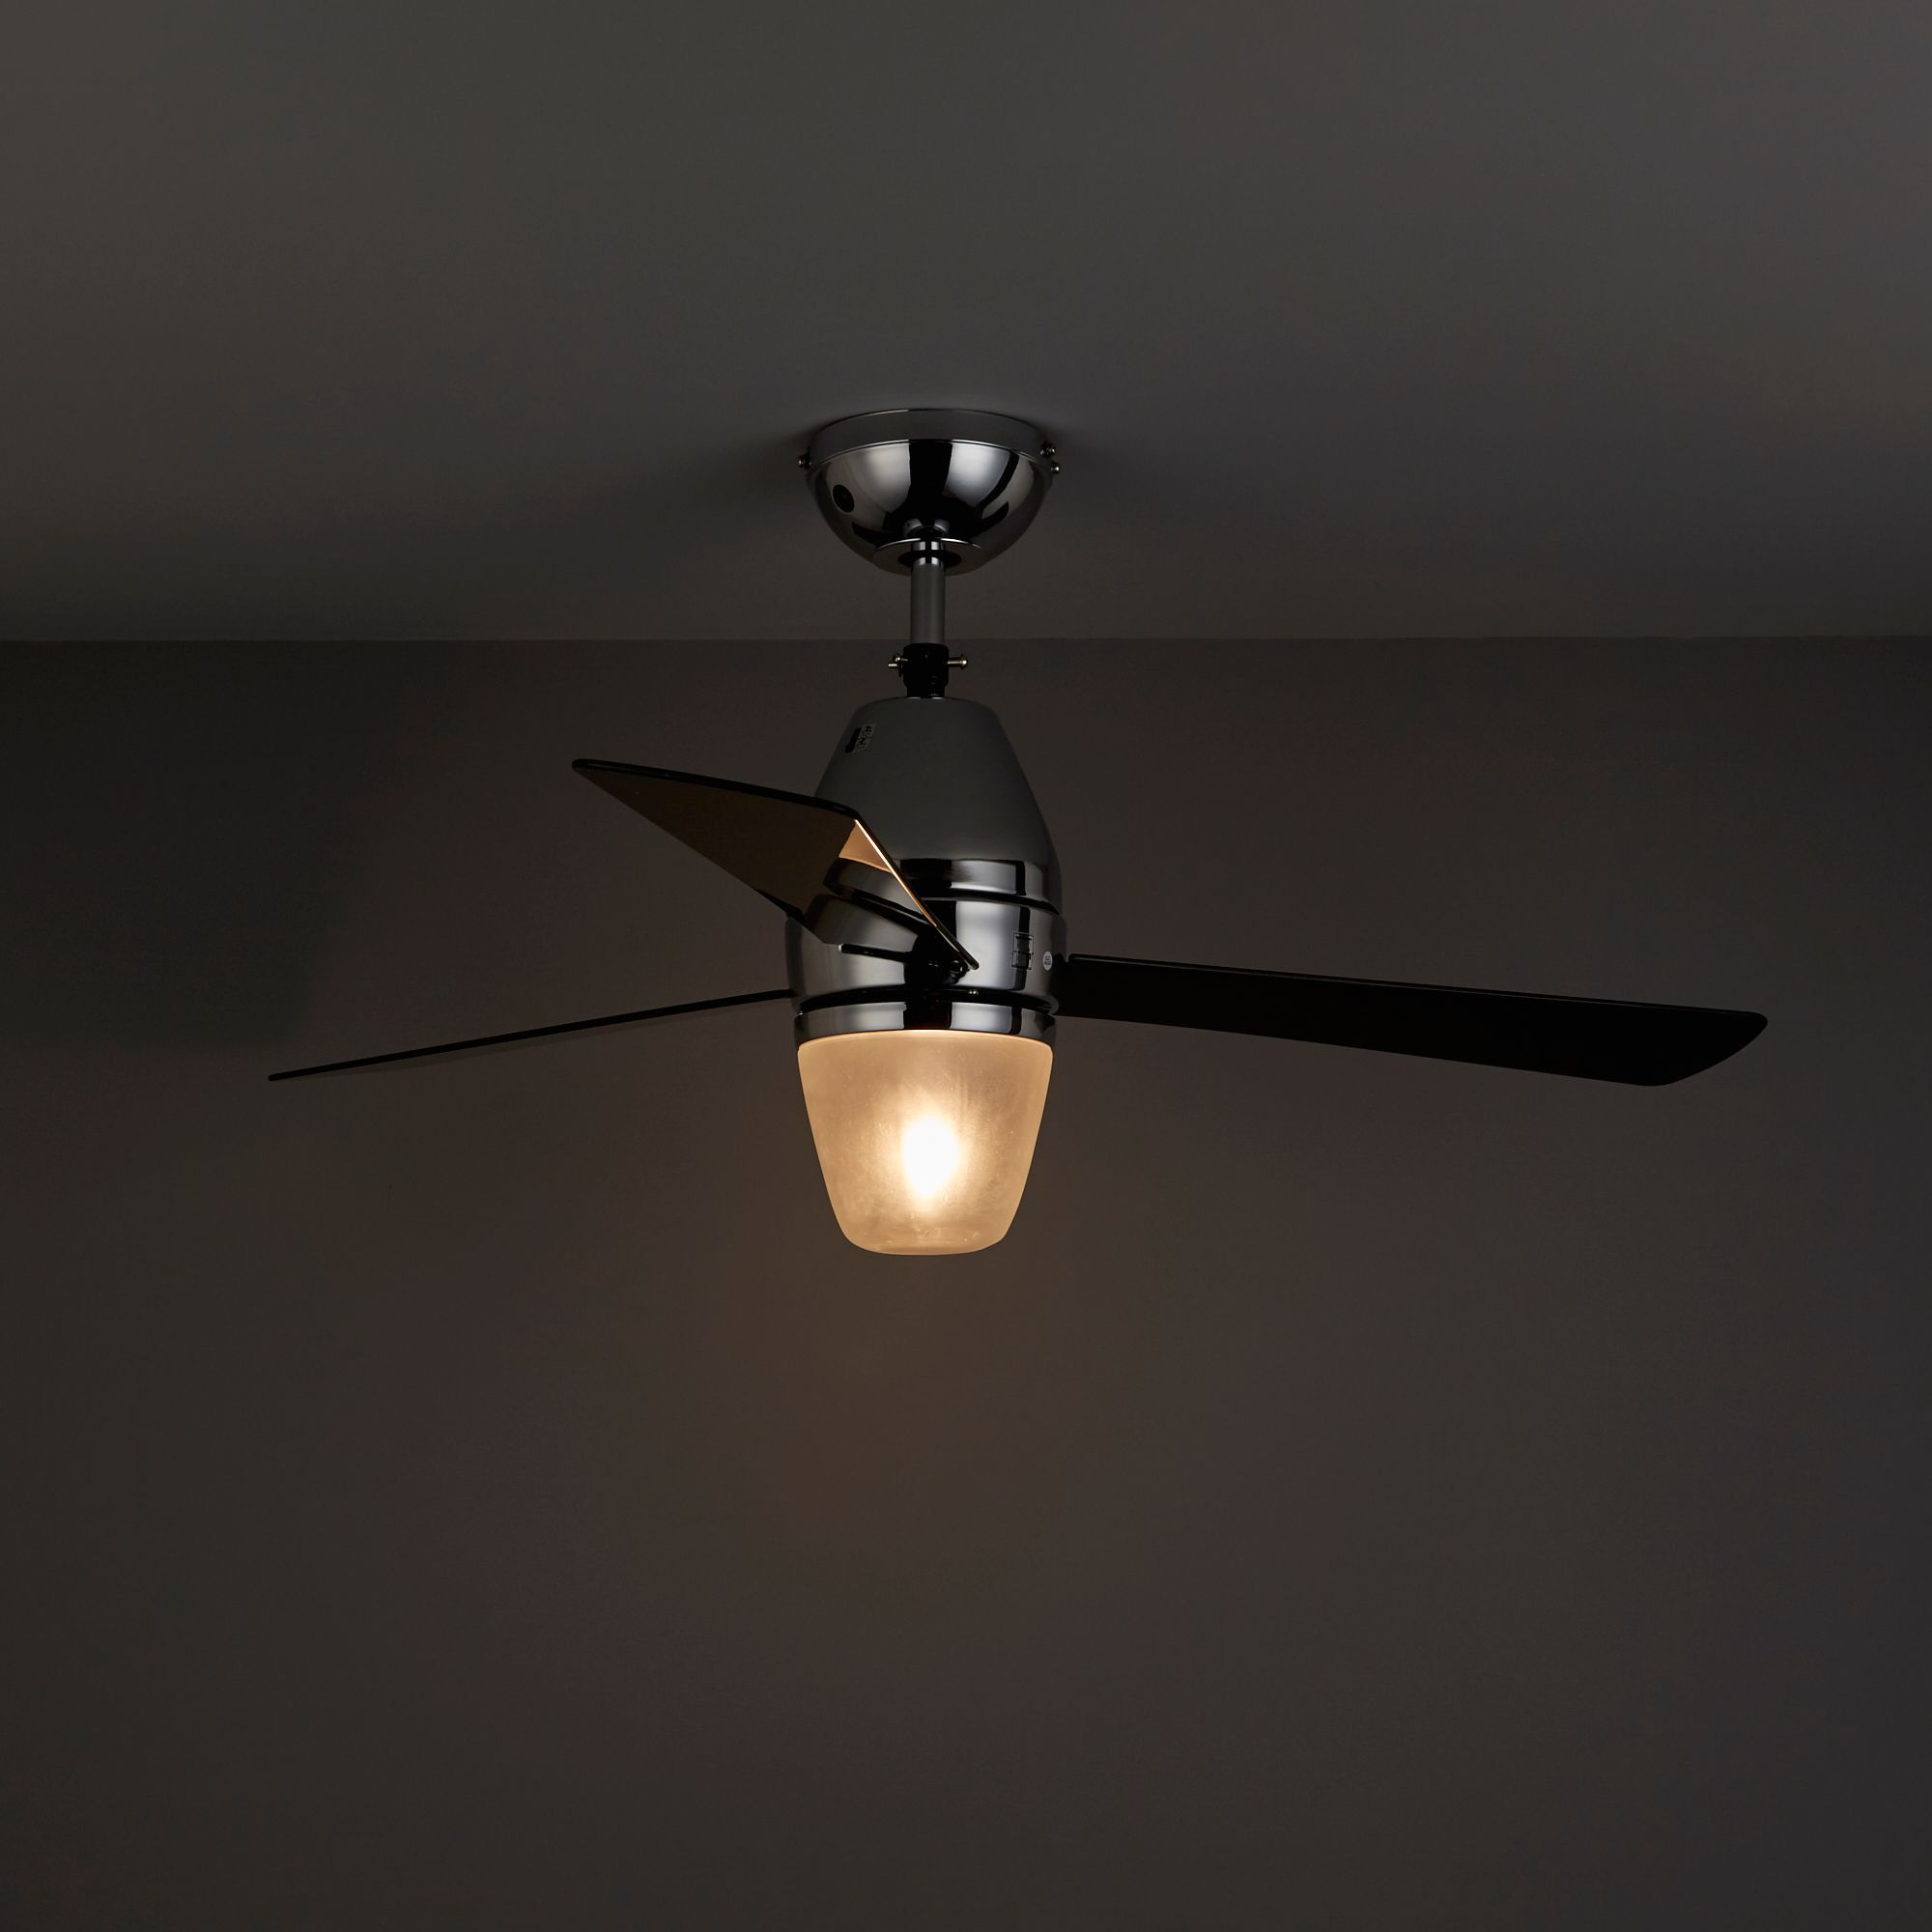 Whoosh Chrome Effect Ceiling Fan Light Departments Diy At B Q